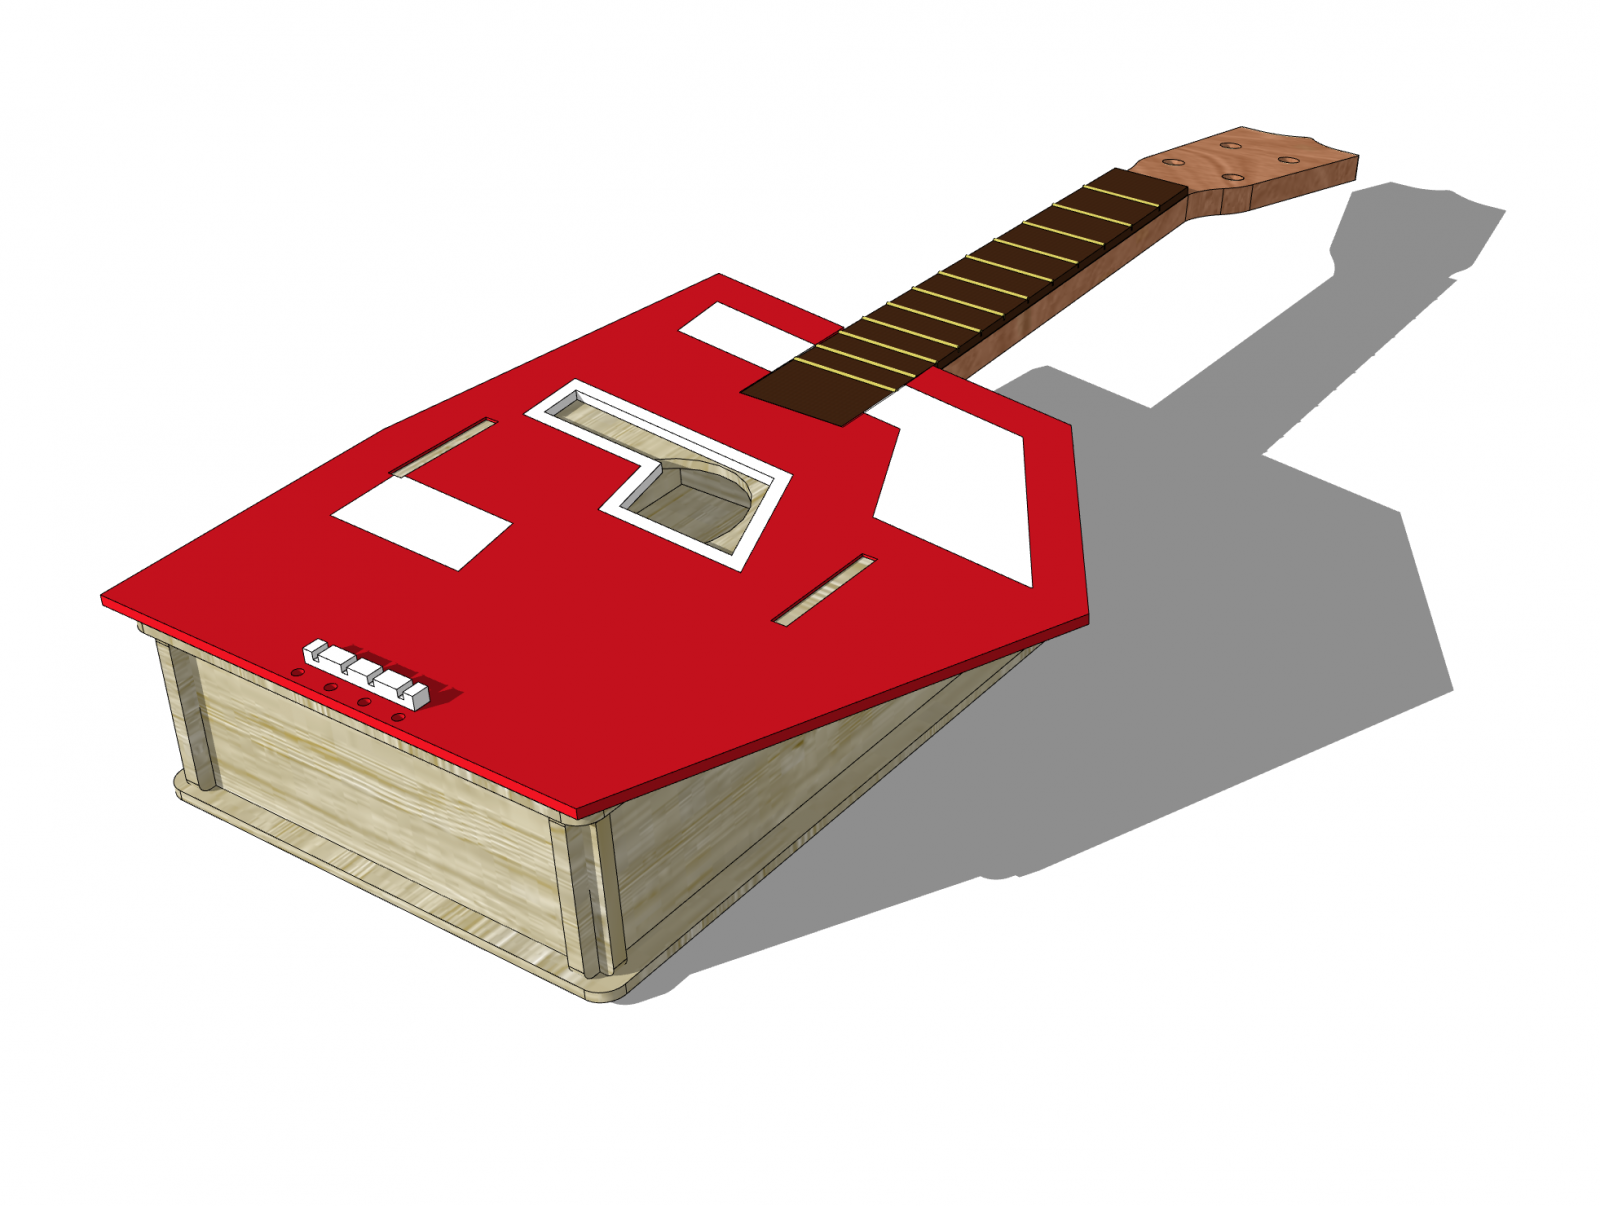 Woodworking Ukulele done in SketchUp